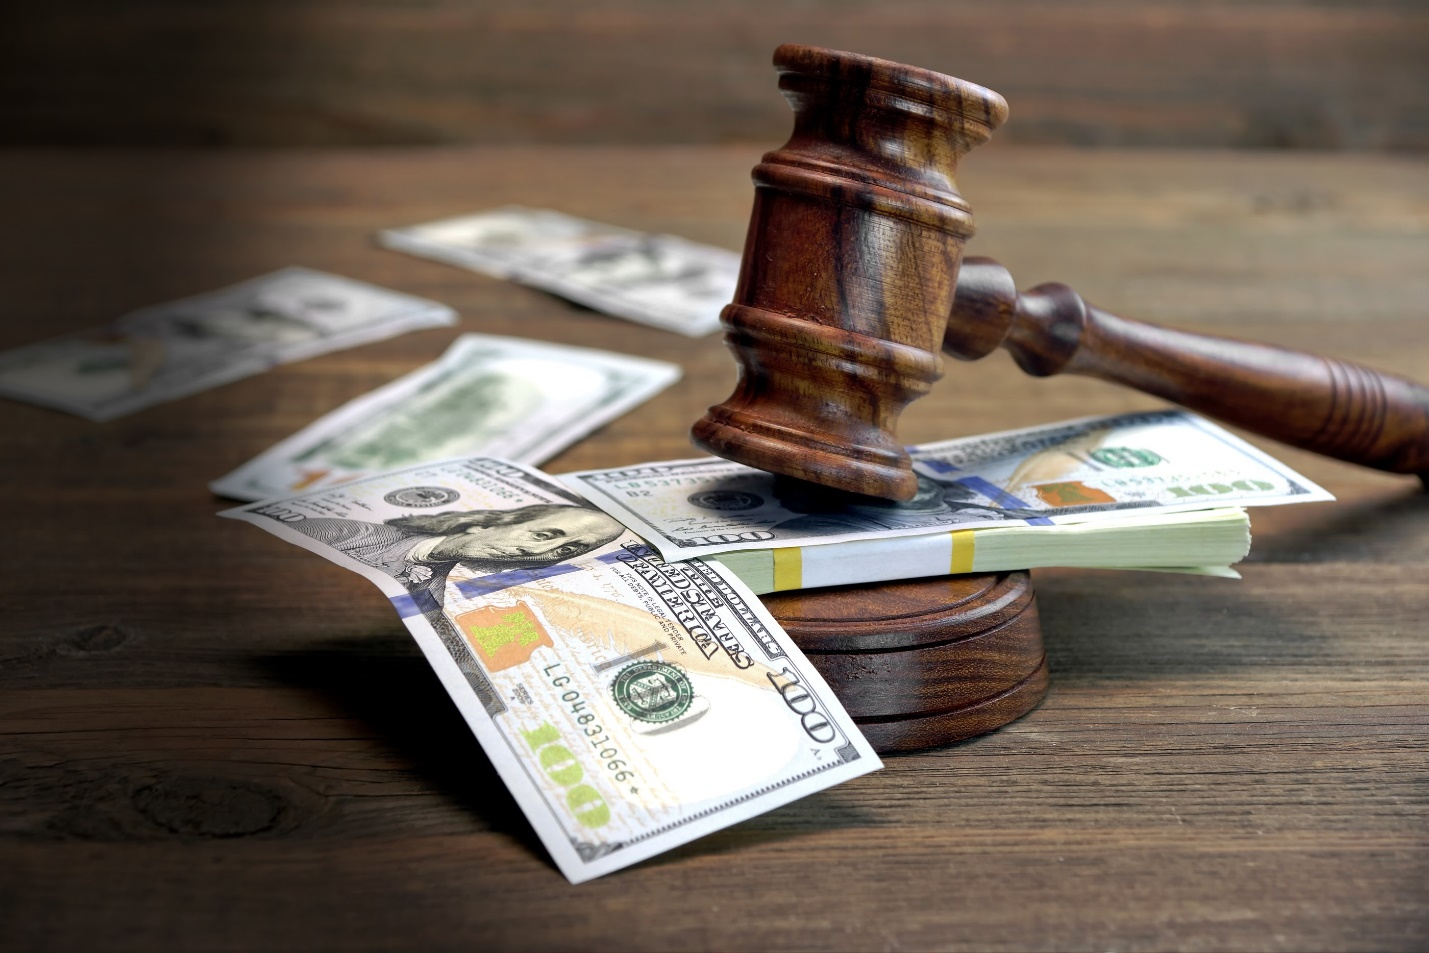 good car accident settlements in arkansas - What is the Average Settlement for Car Accidents in Arkansas?